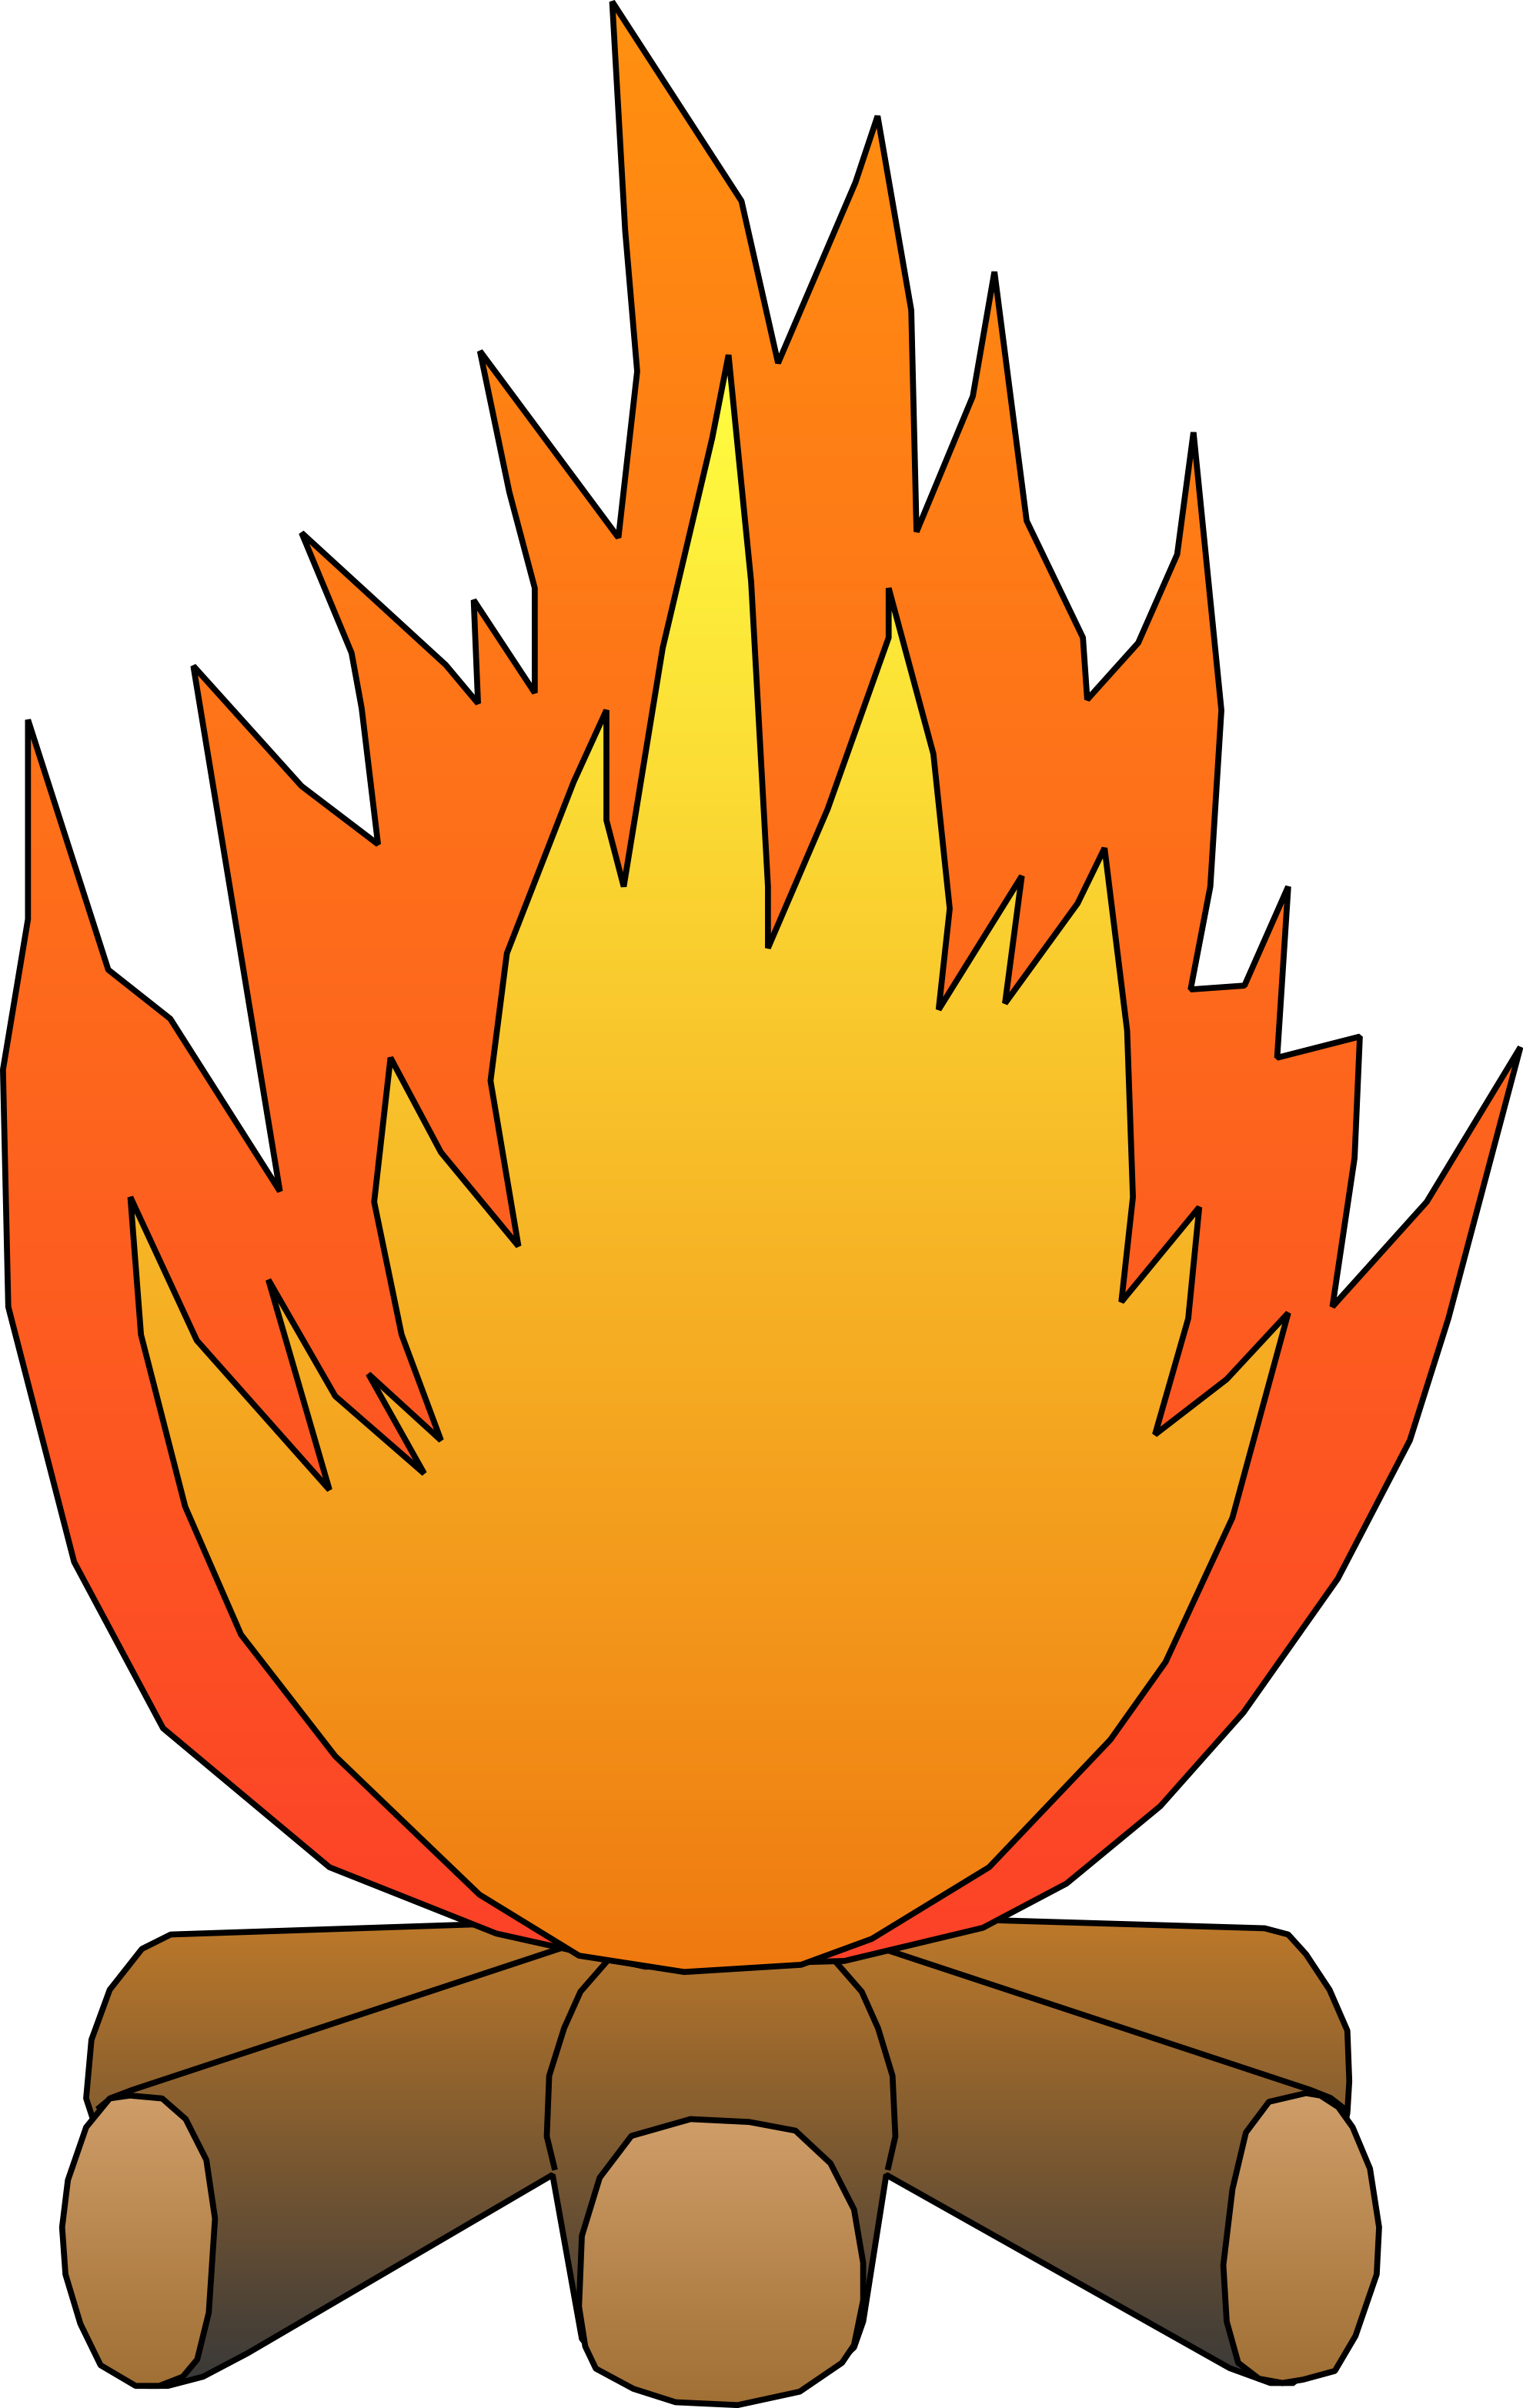 Free campfire clipart image royalty free library Free Campfire Cliparts, Download Free Clip Art, Free Clip Art on ... image royalty free library